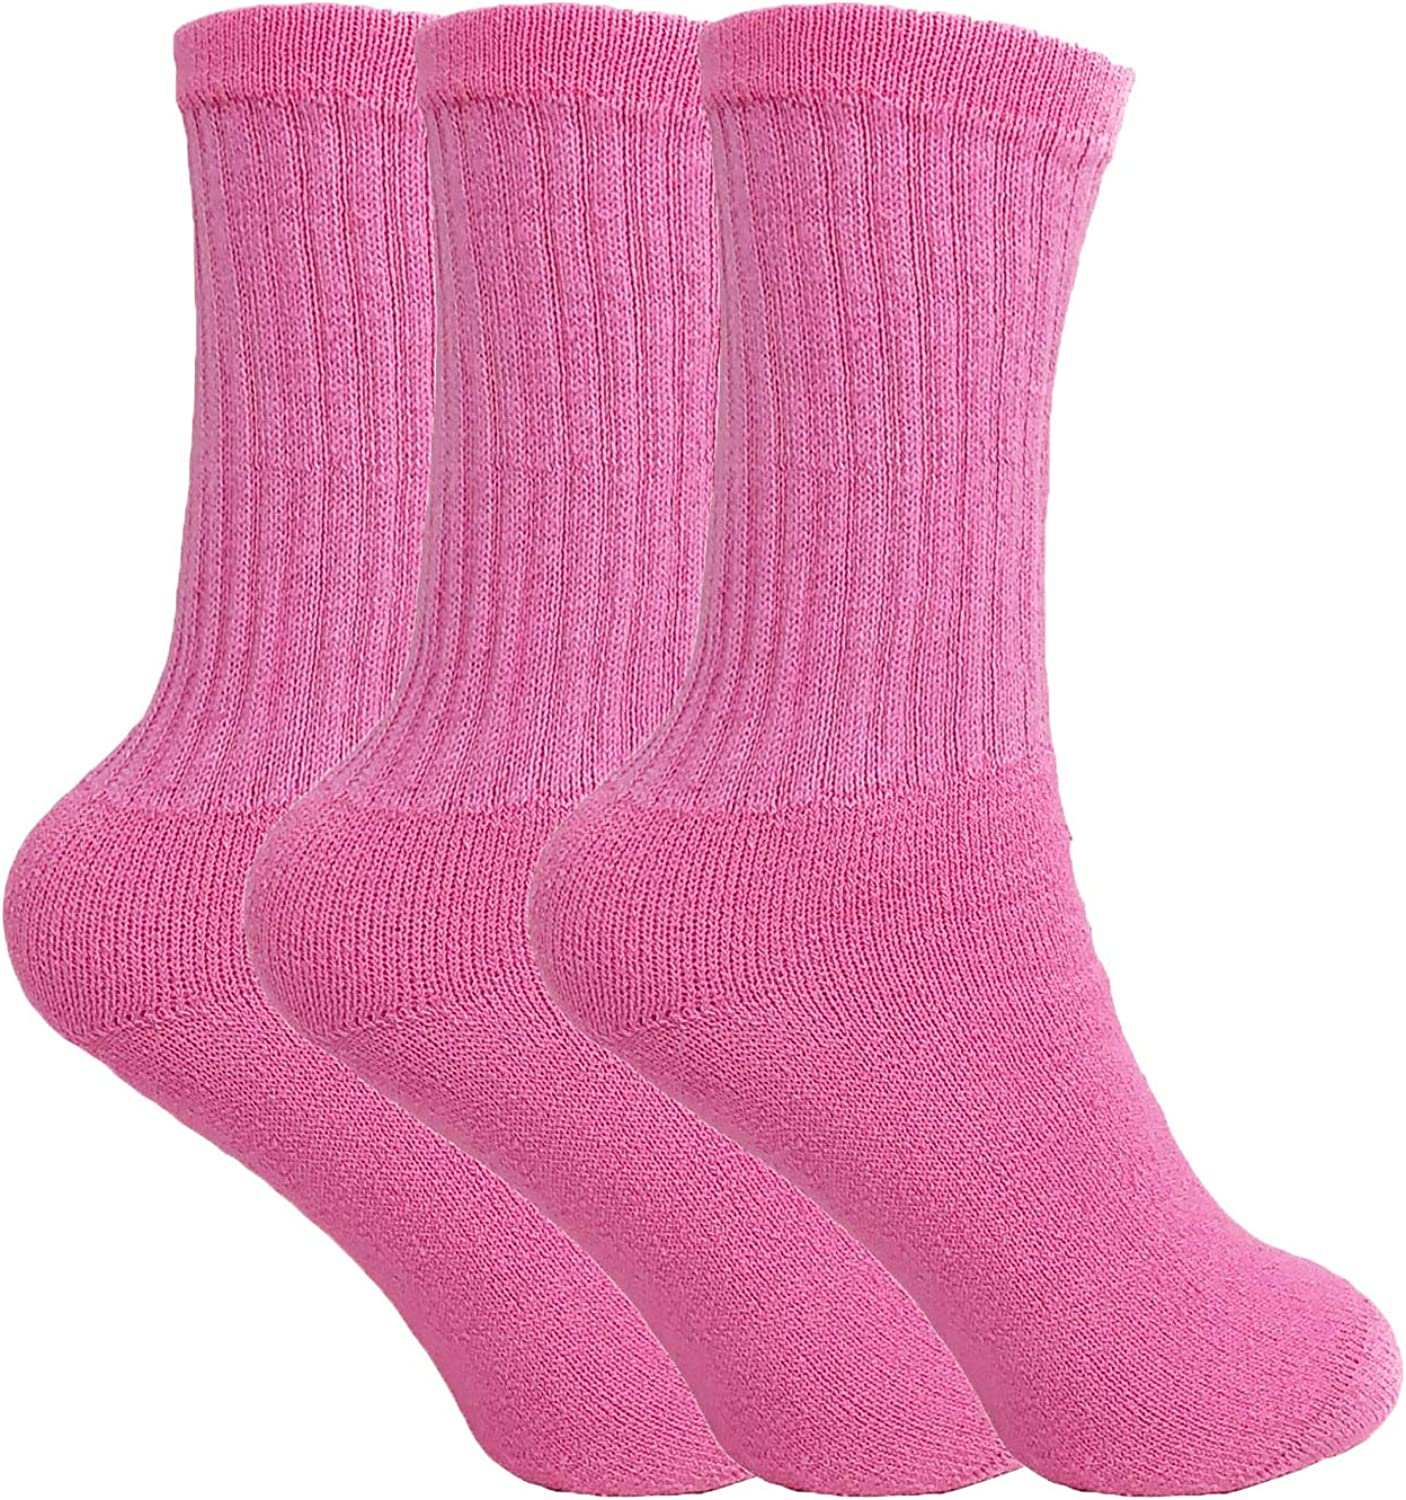 Vintage Style Socks- Knee High, Bobby, Anklet Cotton Crew Socks for Women Made in USA Smooth Toe Seam Socks $16.99 AT vintagedancer.com